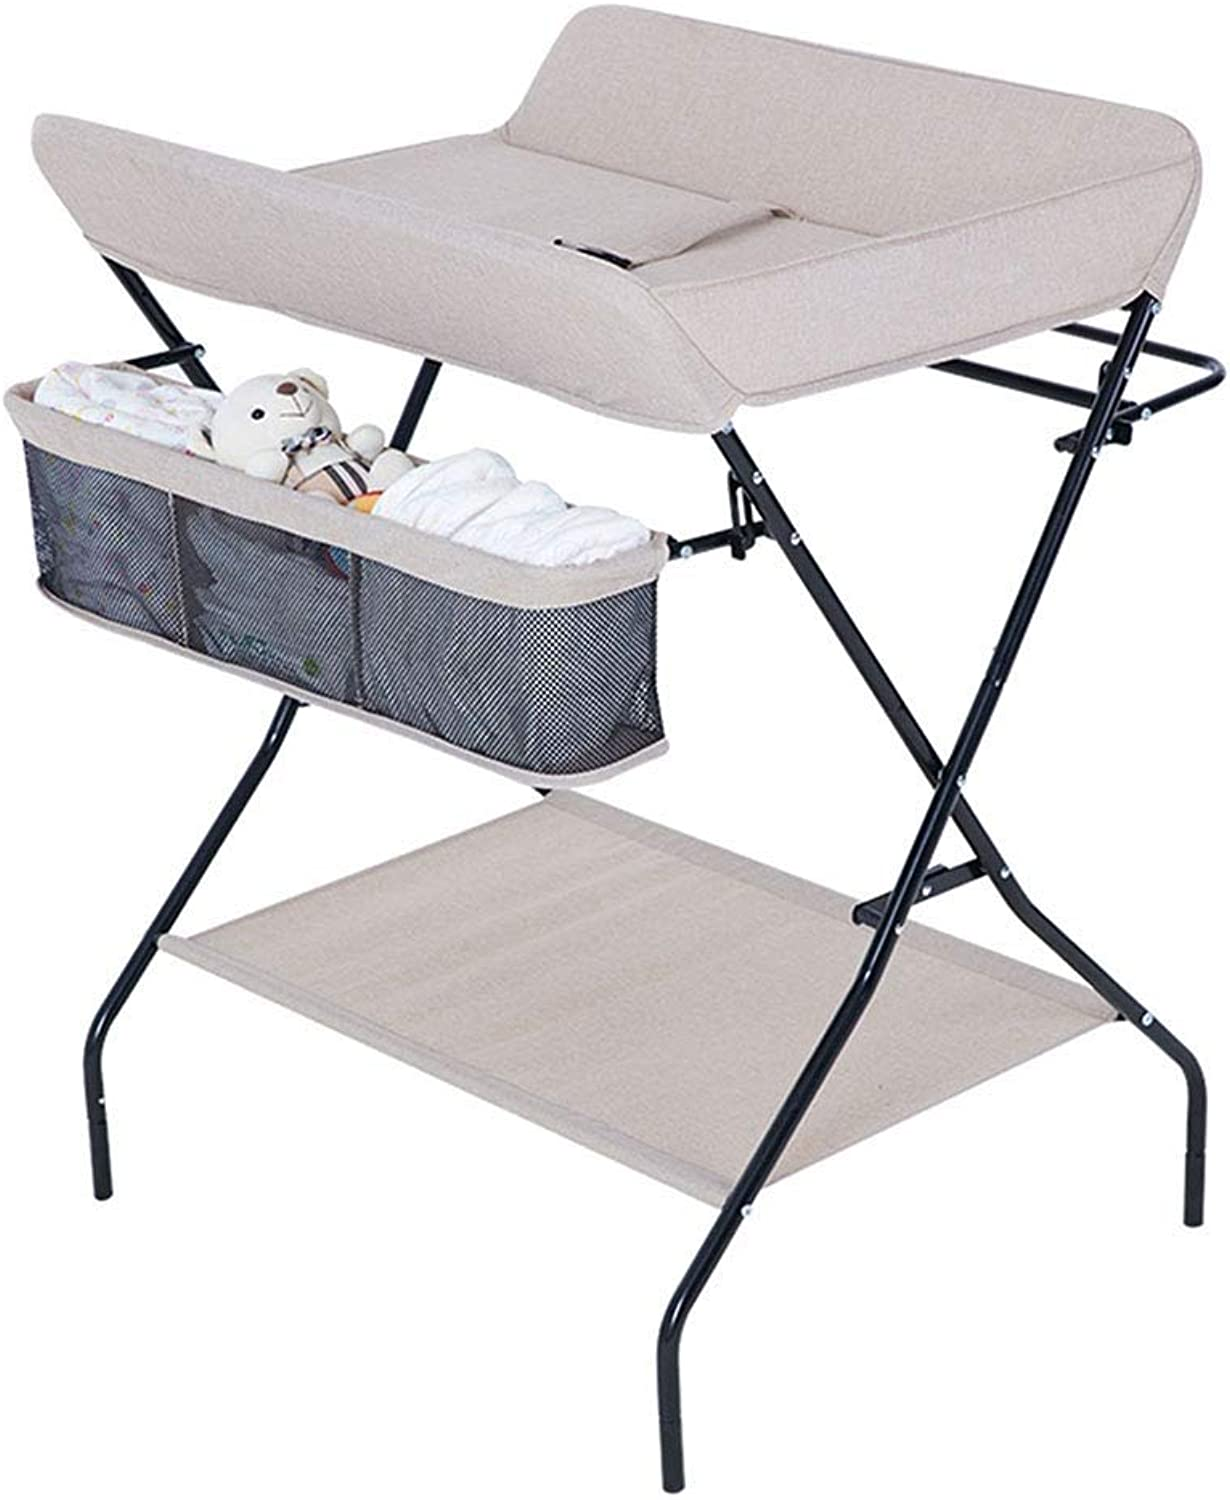 Portable Diaper Station Foldable Baby Changing Table Change Strap Storage Space Baby Dressing Table Massage Station Cross Leg Style